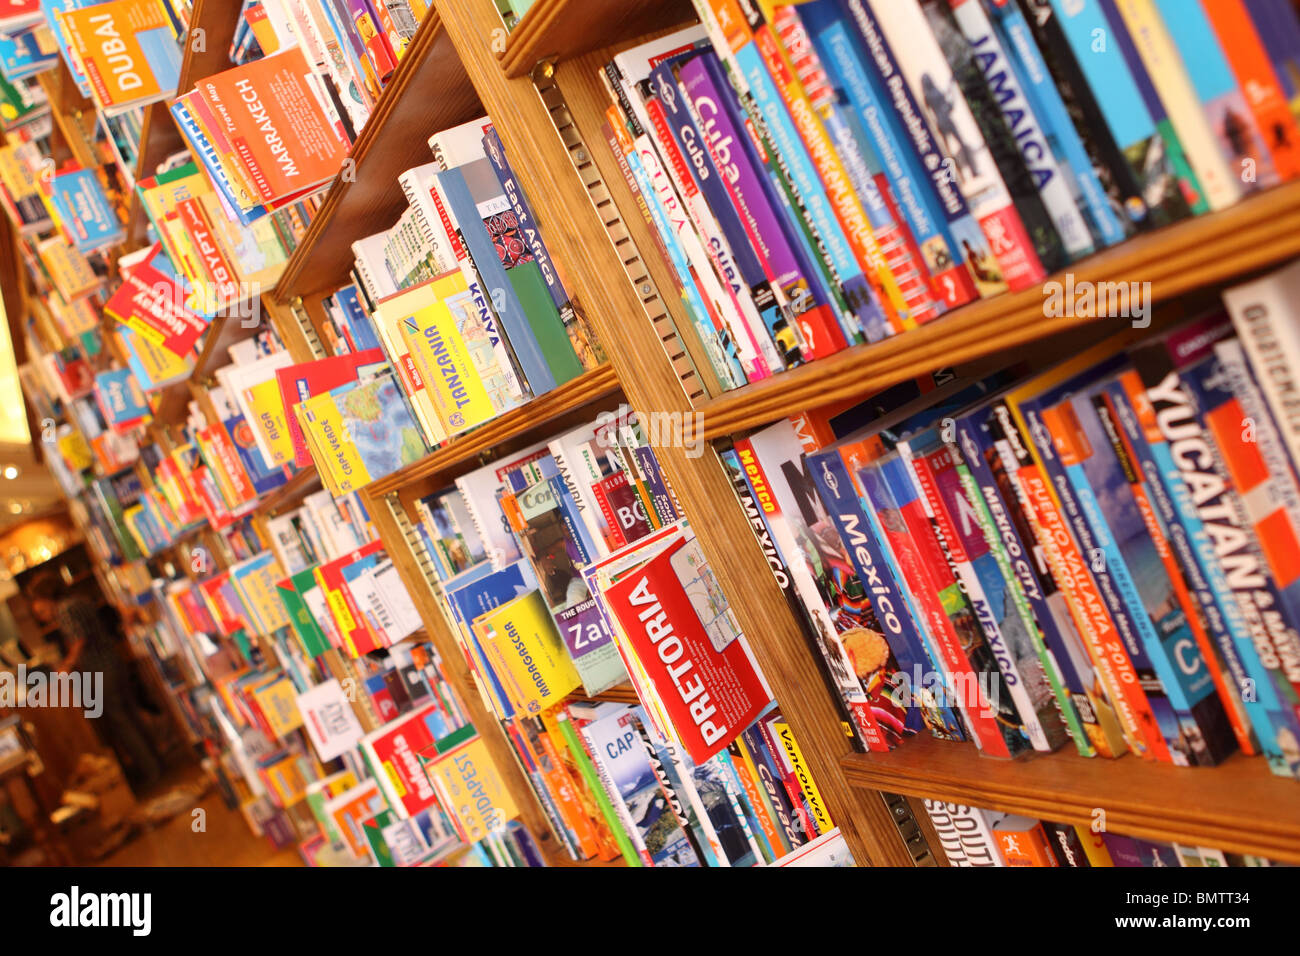 Bookshop travel guide books and tourist maps in independent bookstore - Stock Image